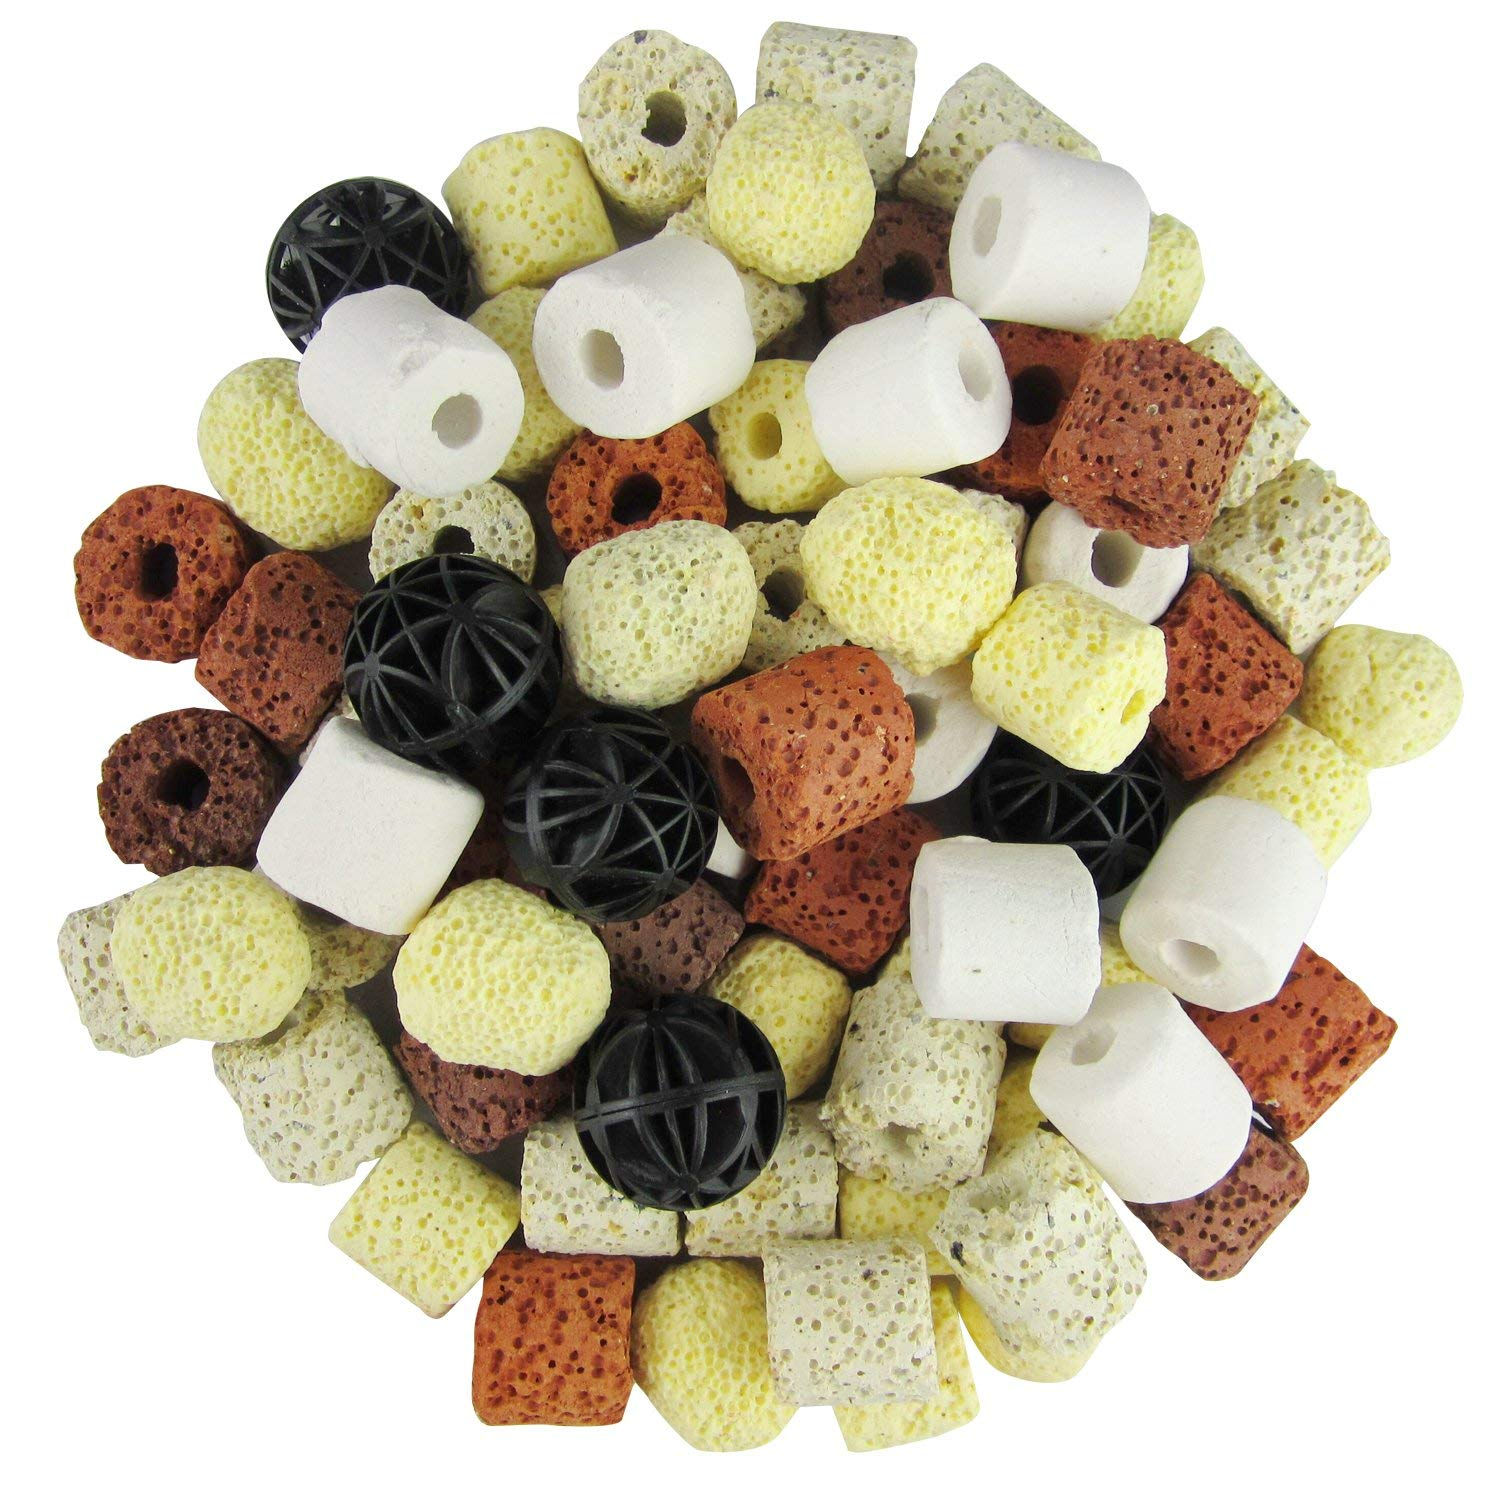 Cpr Bio Bale 1 Gallon Best Biological Filte Media White A Wide Selection Of Colours And Designs Fish & Aquariums